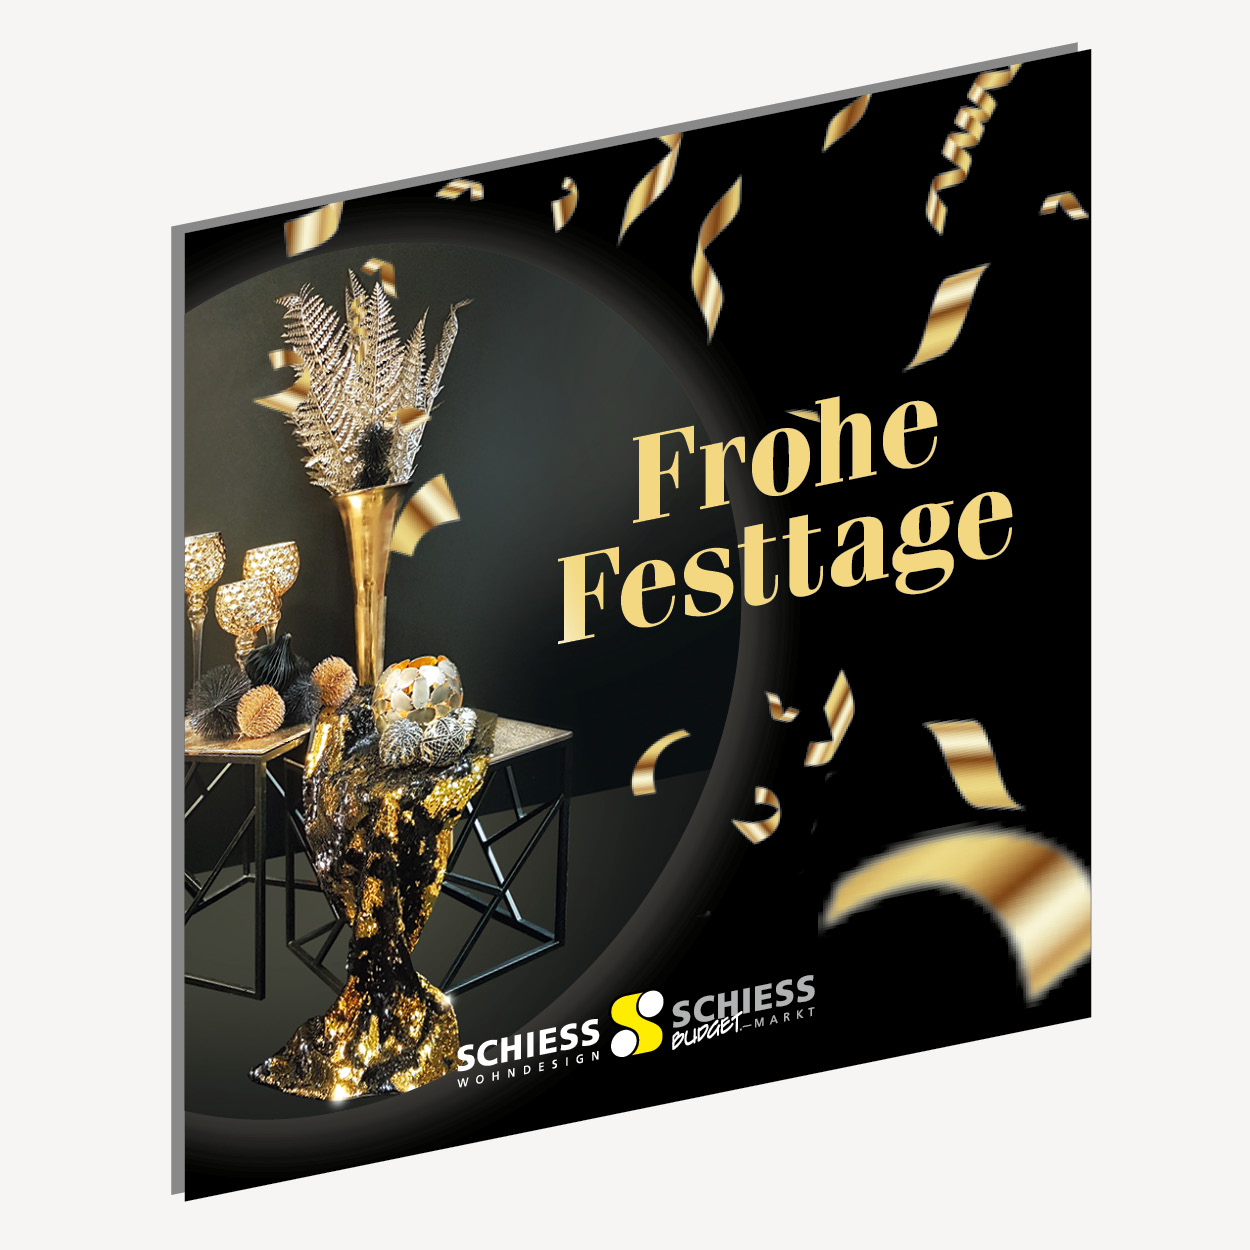 Schiess Wohndesign Weihnachtsevent – Motivierende Inspirationen zu Weihnachten. Idee. Konzeption. Gestaltung. Fotografie. Bildbearbeitung. Corporate Design. Mailing. POS. Plakat. Social Media. PR. Gesamtkommunikation. Adaption auf diverse Kommunikationsmittel.